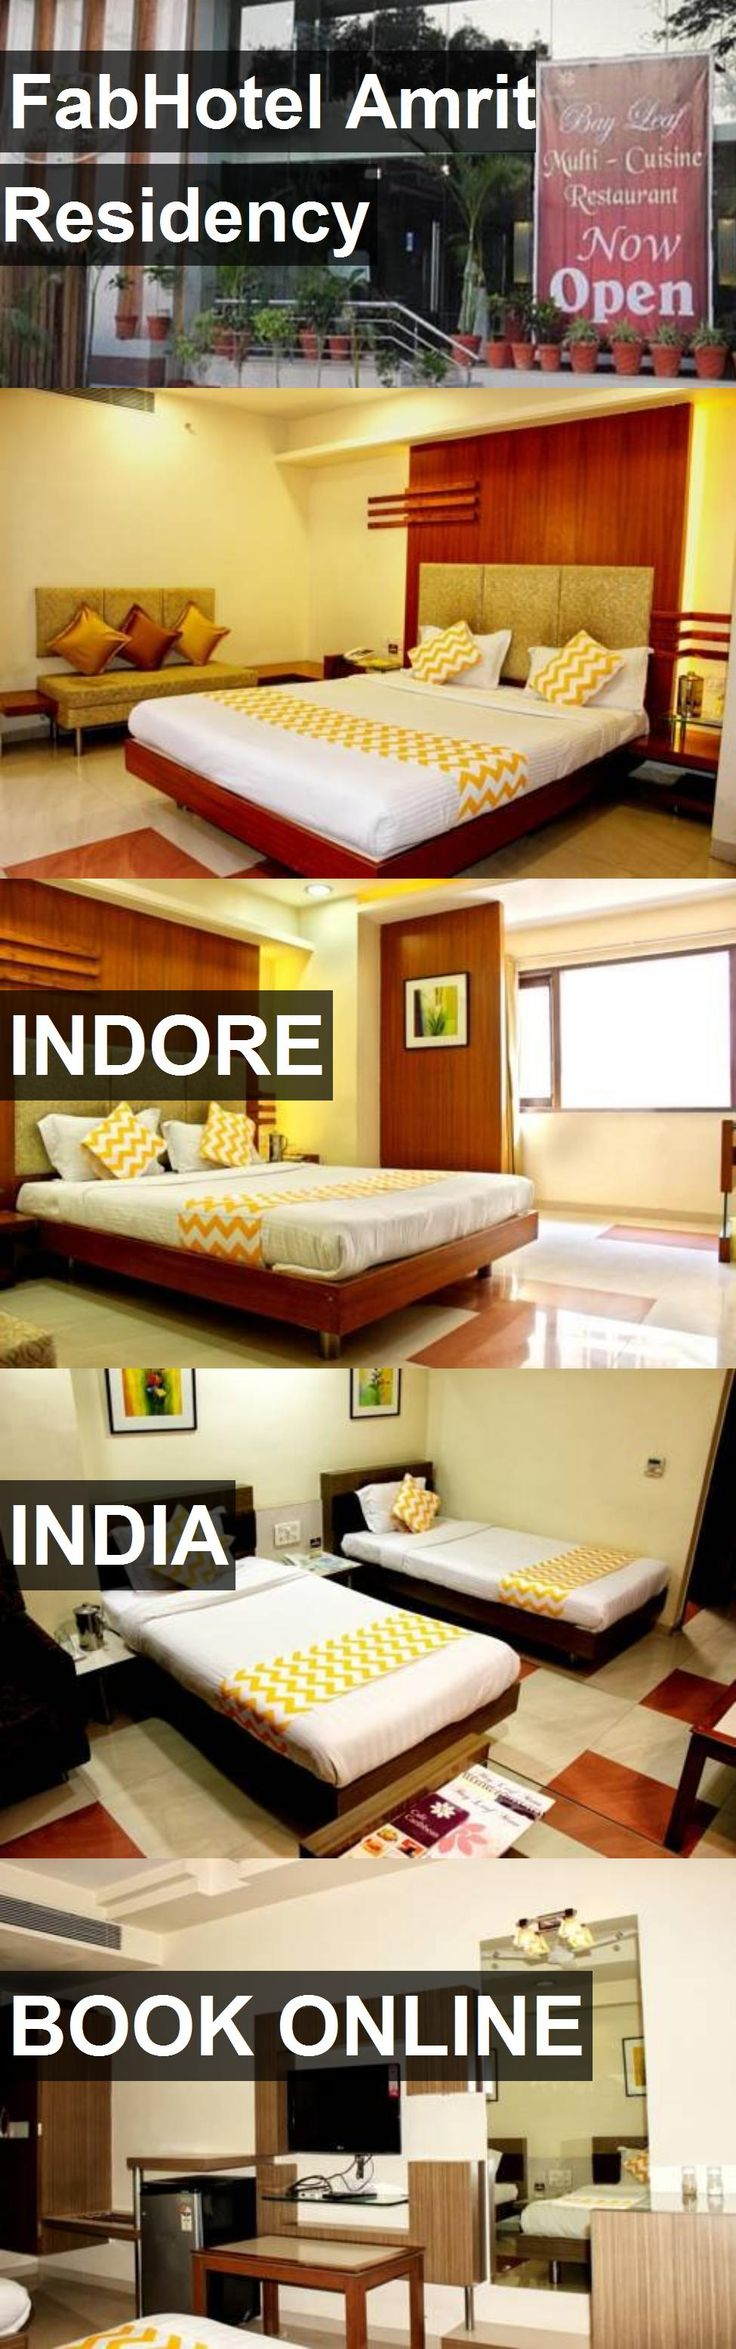 FabHotel Amrit Residency in Indore, India. For more information, photos, reviews and best prices please follow the link. #India #Indore #travel #vacation #hotel